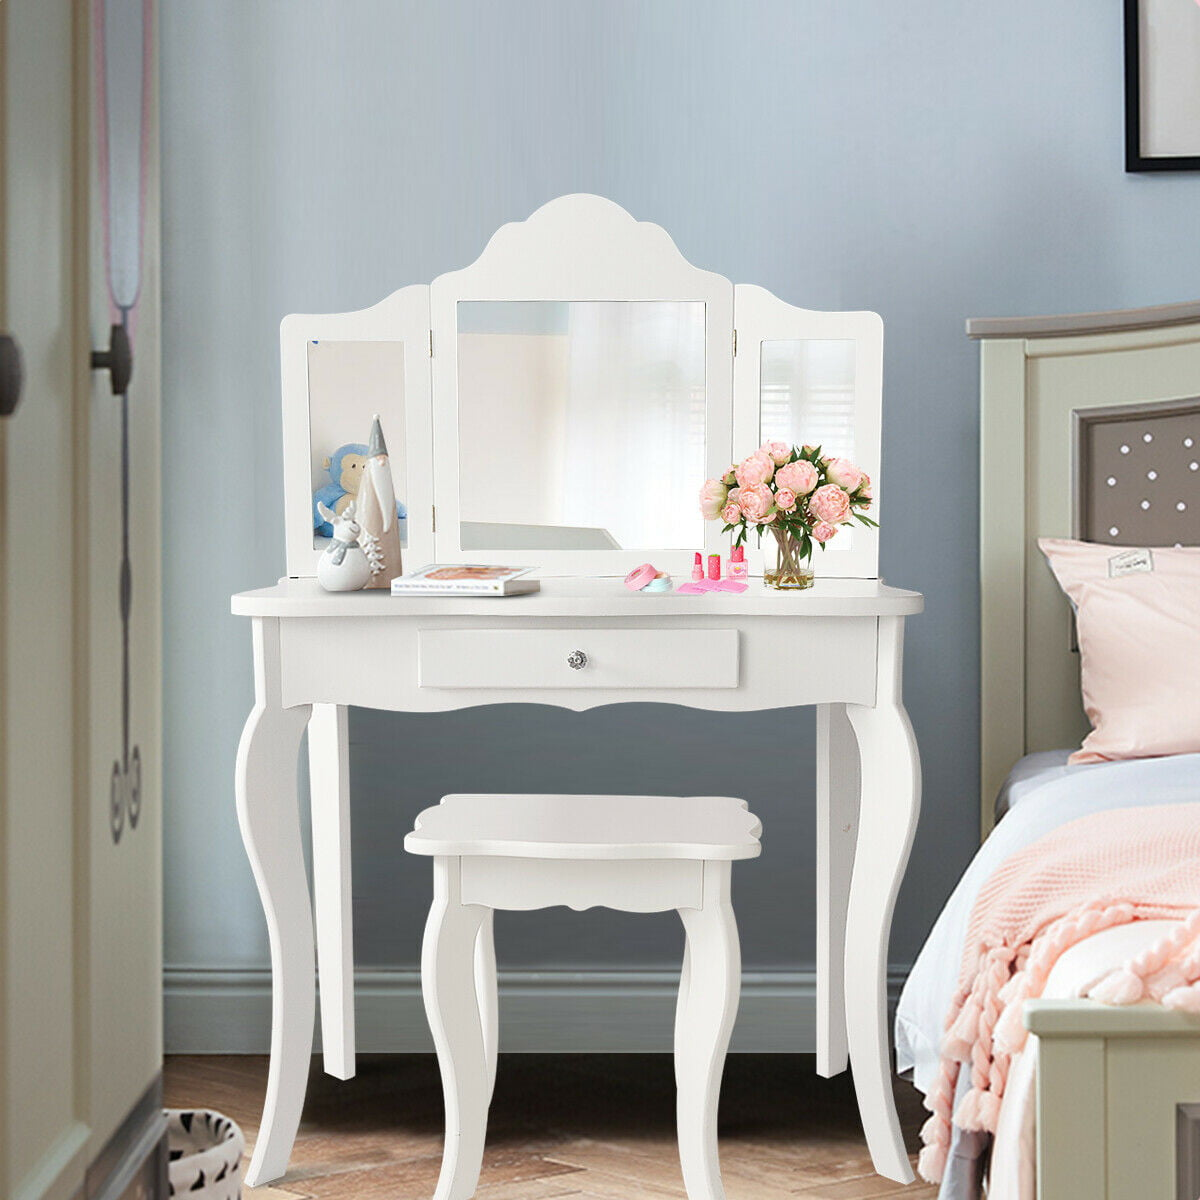 Costway Vanity Table Set Makeup Dressing Table Kids Girls Stool Mirror Walmart Com Walmart Com